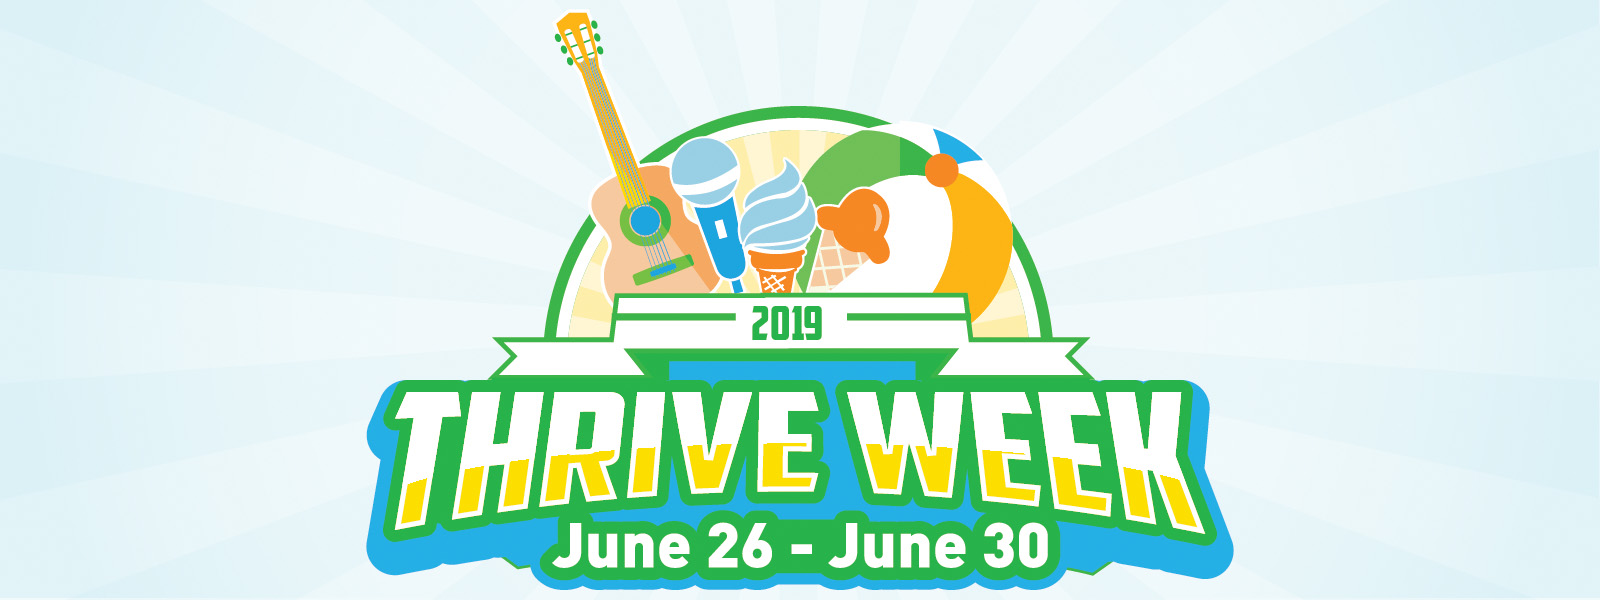 thrive week logo